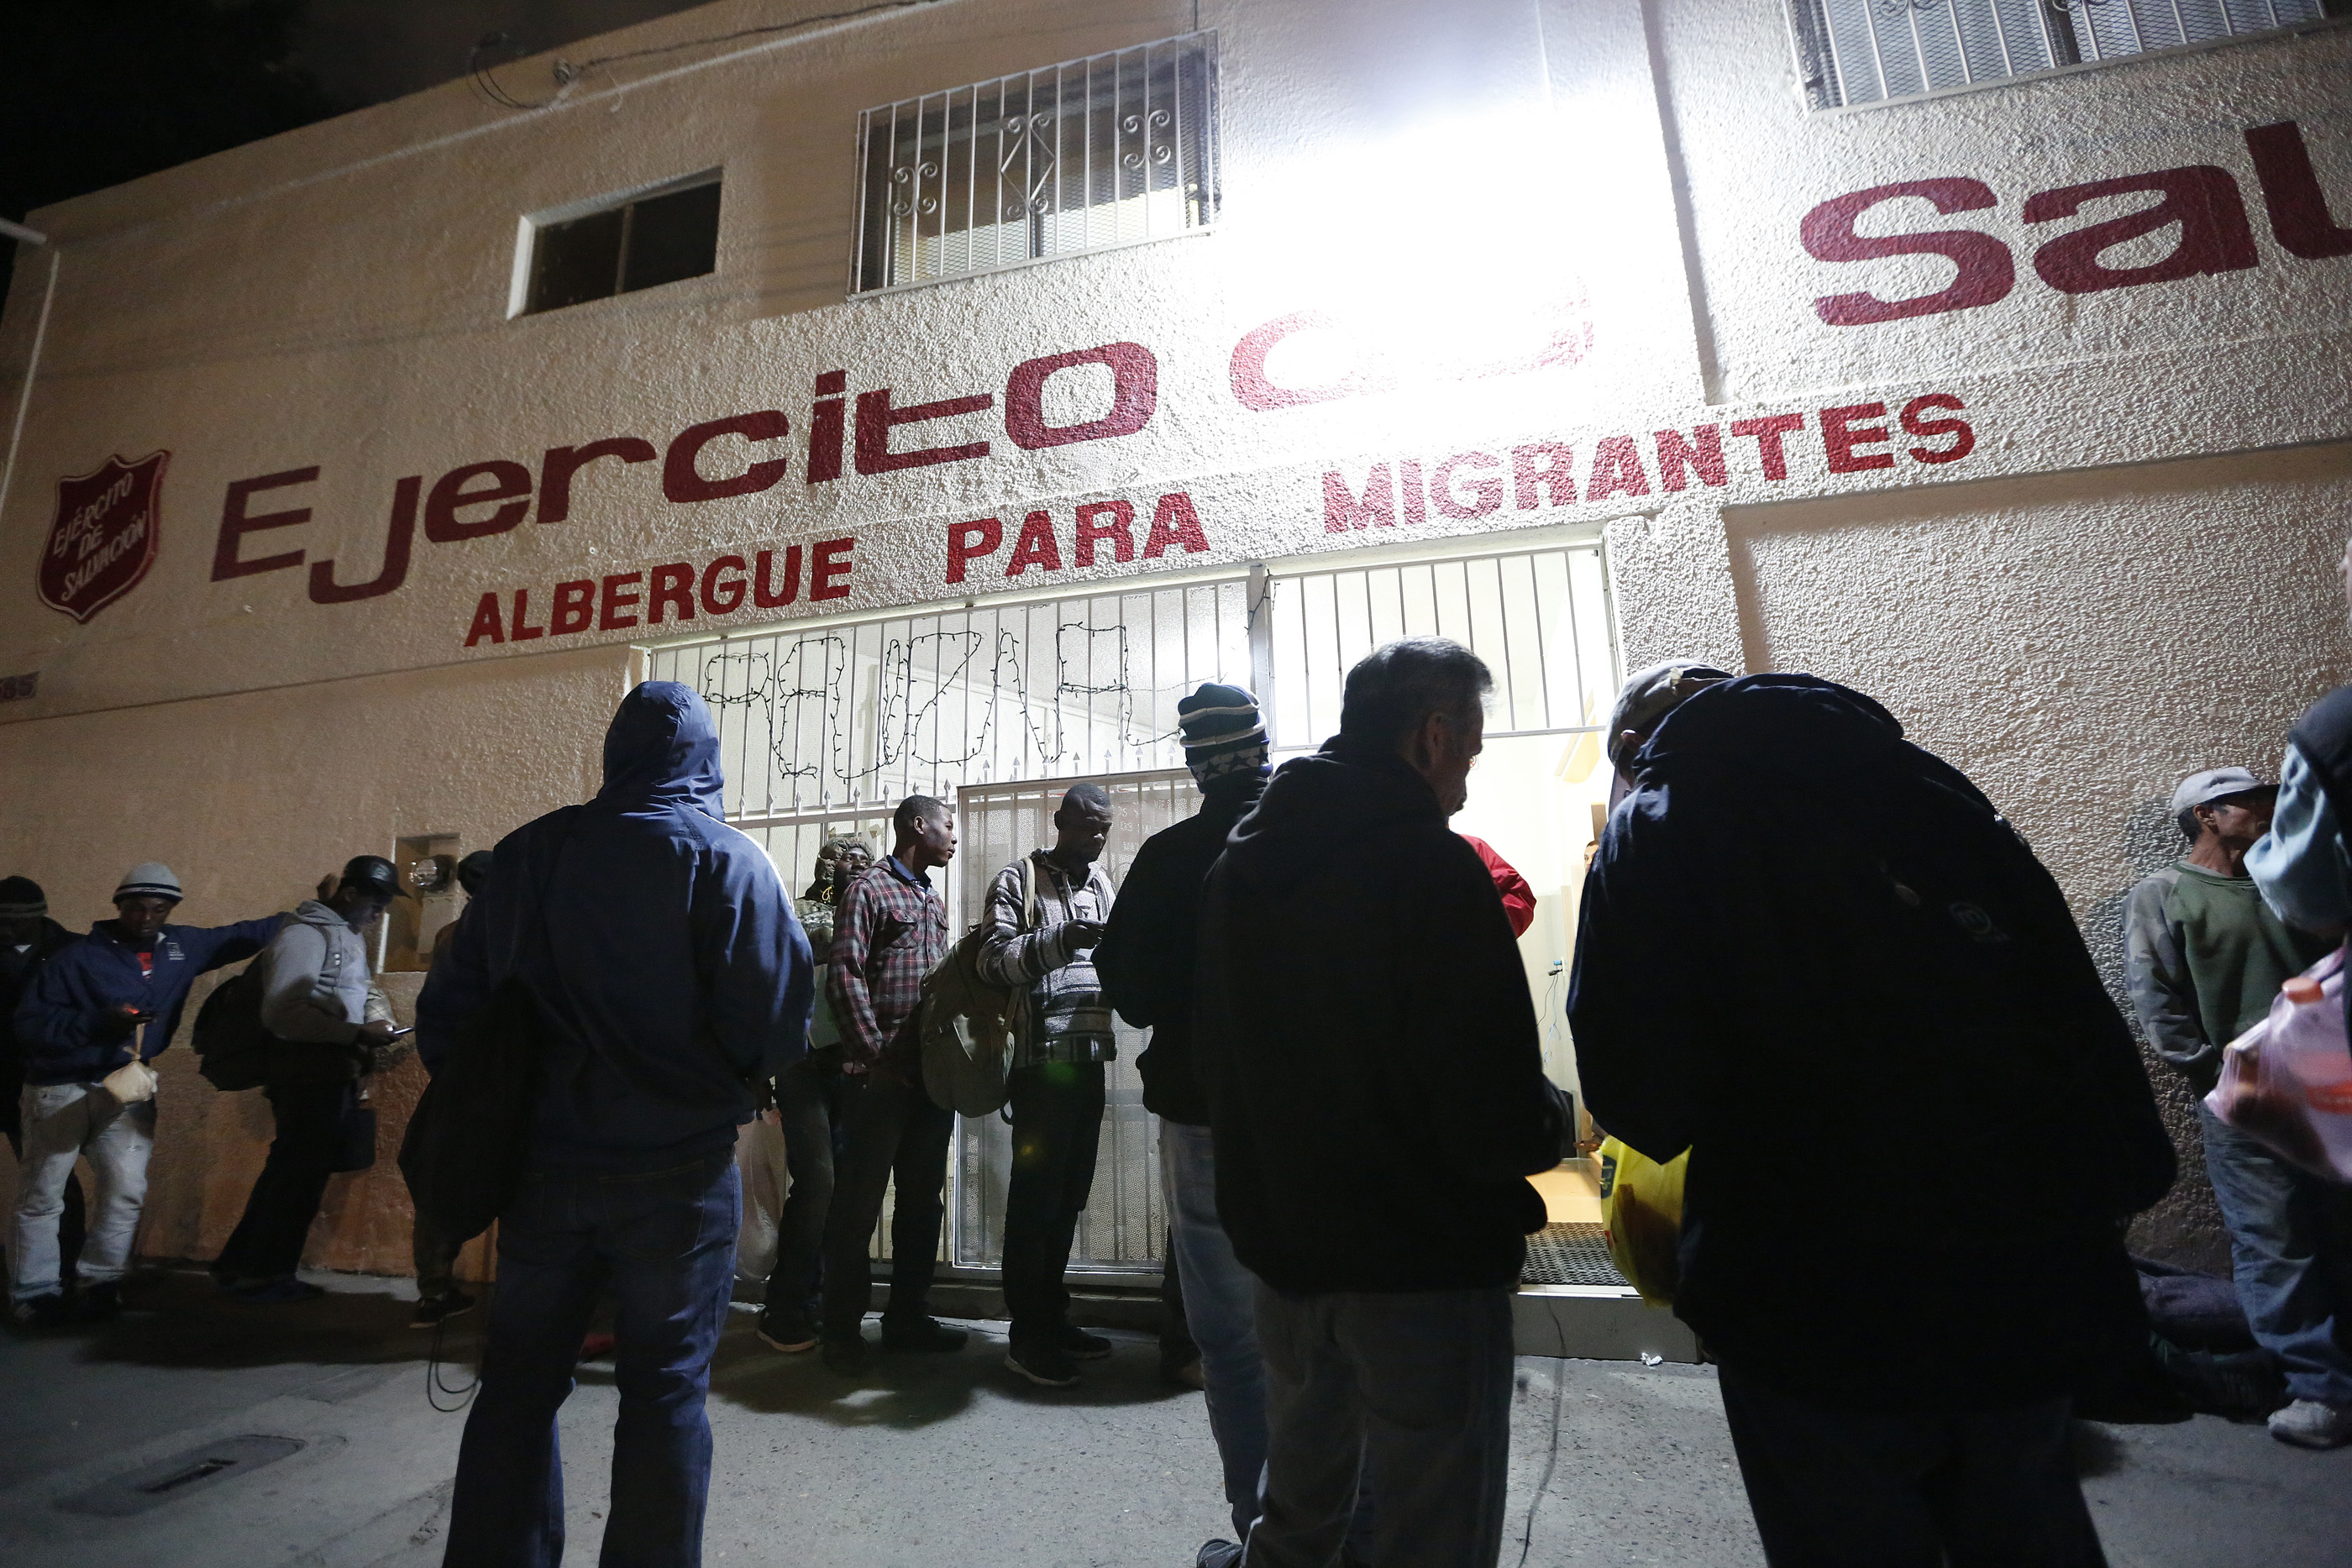 12/08/16/ TIJUANA/A large group of Haitian refugees wait to enter the Salvation Army shelter in Tijuana. An unprecedented arrival of Haitians and others seeking entry into the United States in recent weeks has sent Tijuanas migrant shelters scrambling to find beds, blankets, food and other necessities to serve this increase of people awaiting processing by U.S. authorities. (Photo Aurelia Ventura/ La Opinion)